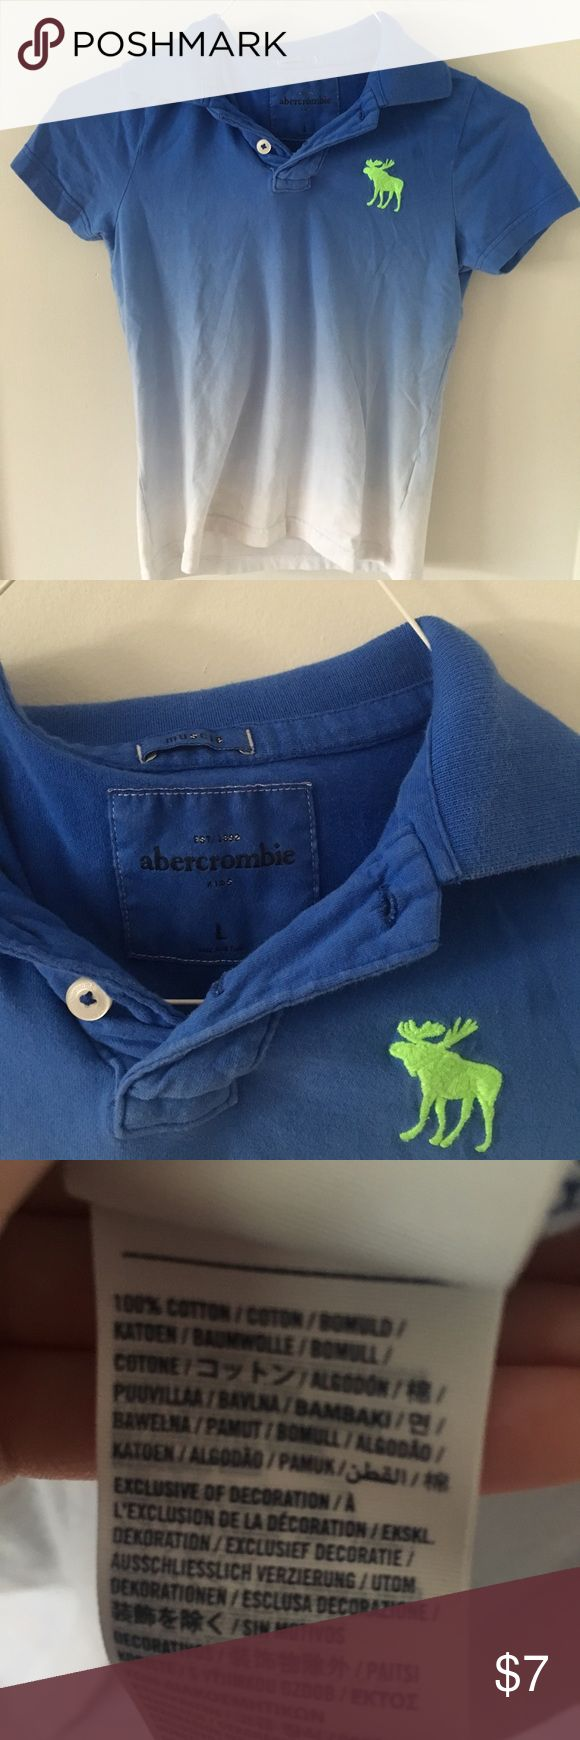 abercrombie kids tie-dye icon polo abercrombie kids tie-dye polo with green logo. Great condition!   ➳SAME OR NEXT DAY SHIPPING                                        ➳No trades, thank you!  ➳Make me an offer! ➳Lowballs declined ➳Ask questions BEFORE purchasing! abercrombie kids Shirts & Tops Polos